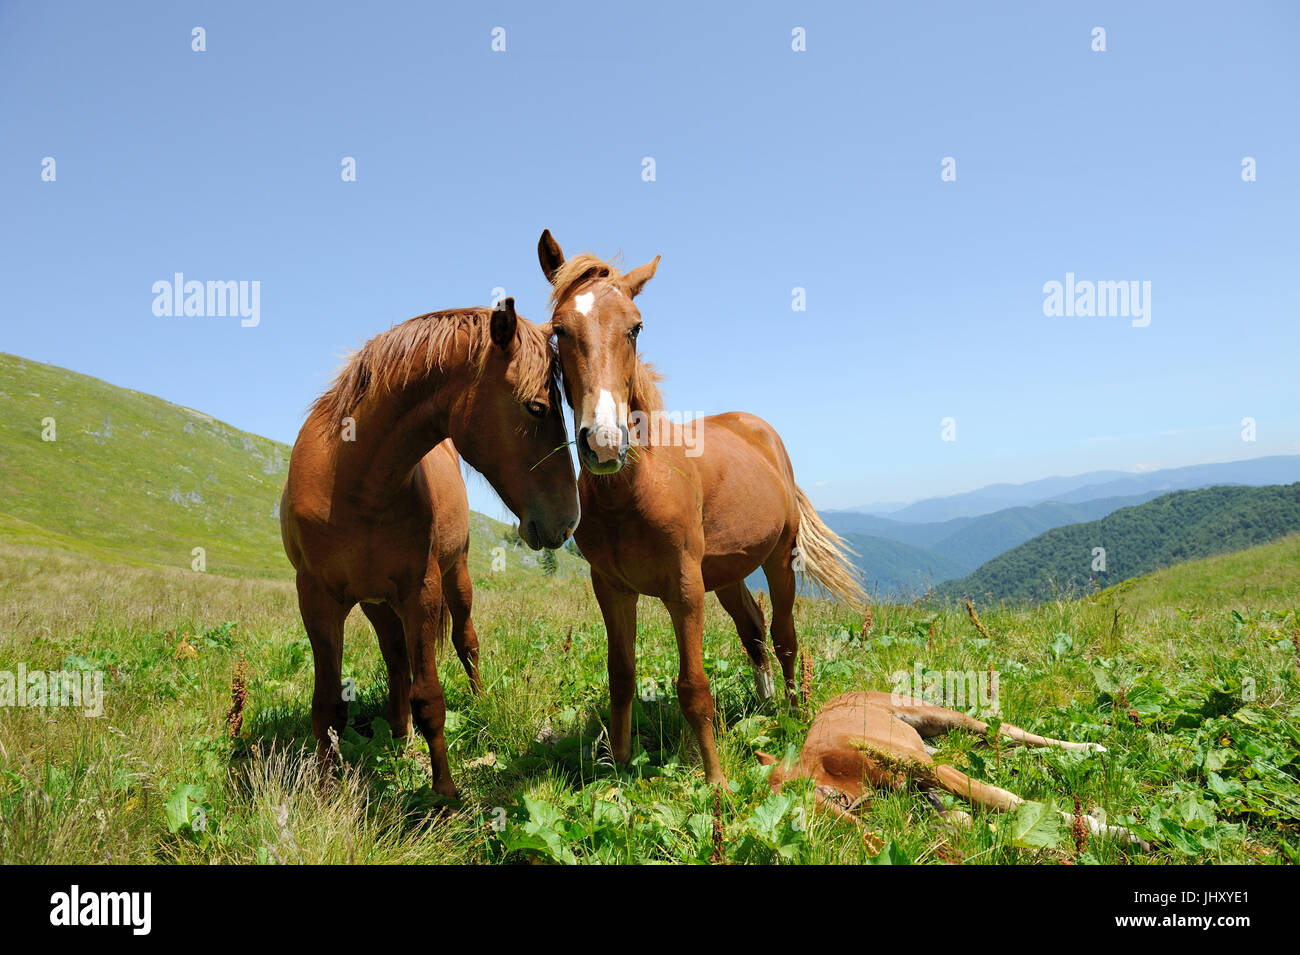 Bay horse skips on a green meadow against mountains - Stock Image